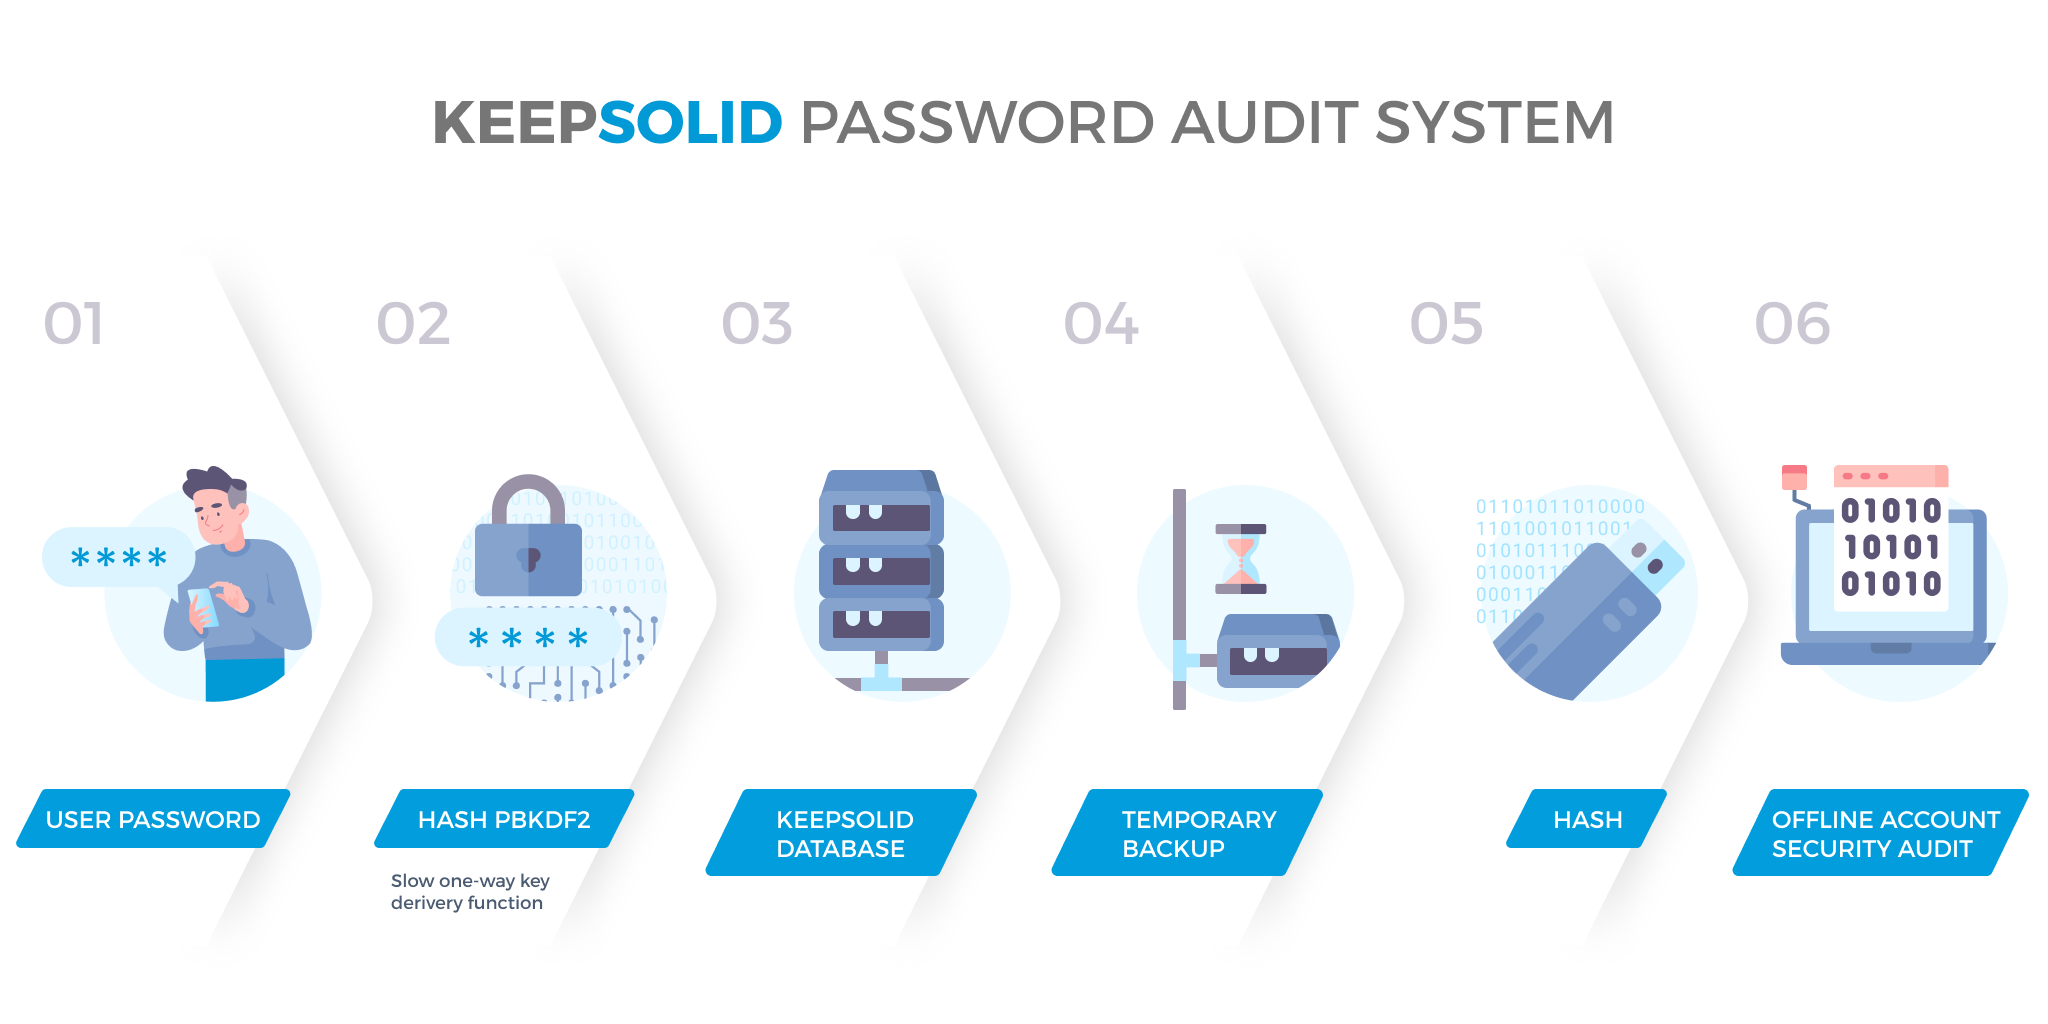 KeepSolid password audit system